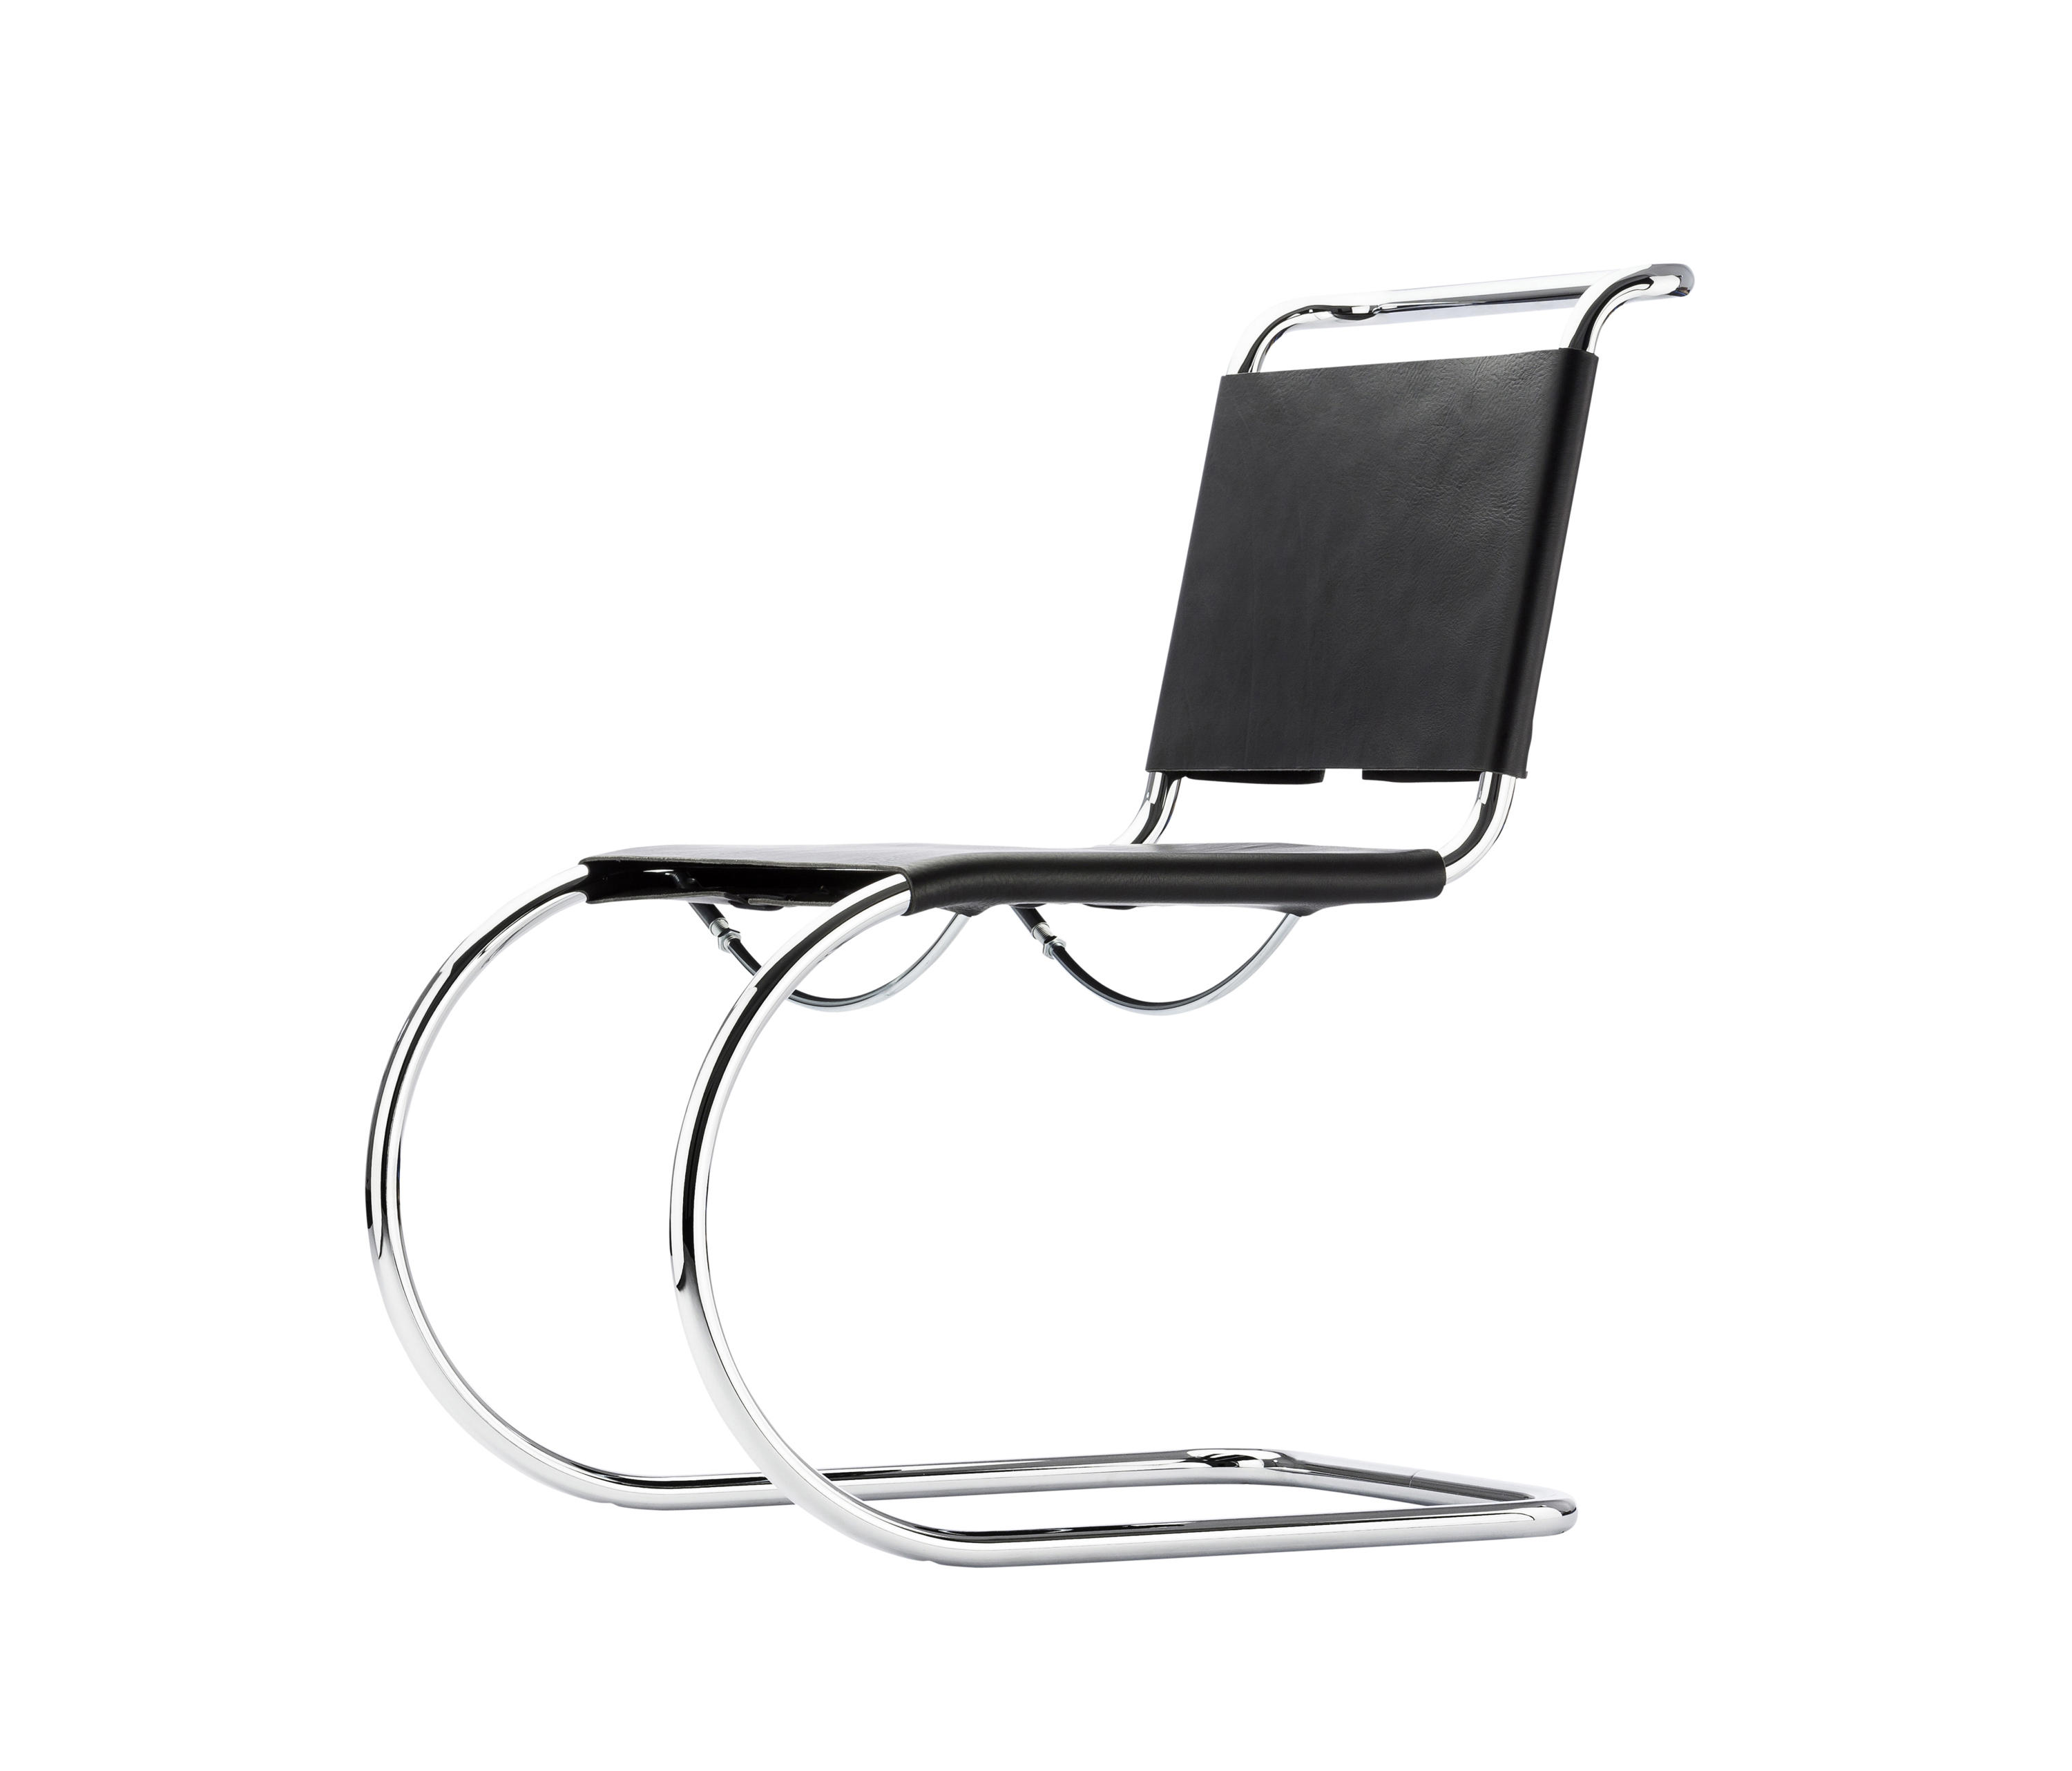 S 533 l chairs from thonet architonic for Thonet stuhl